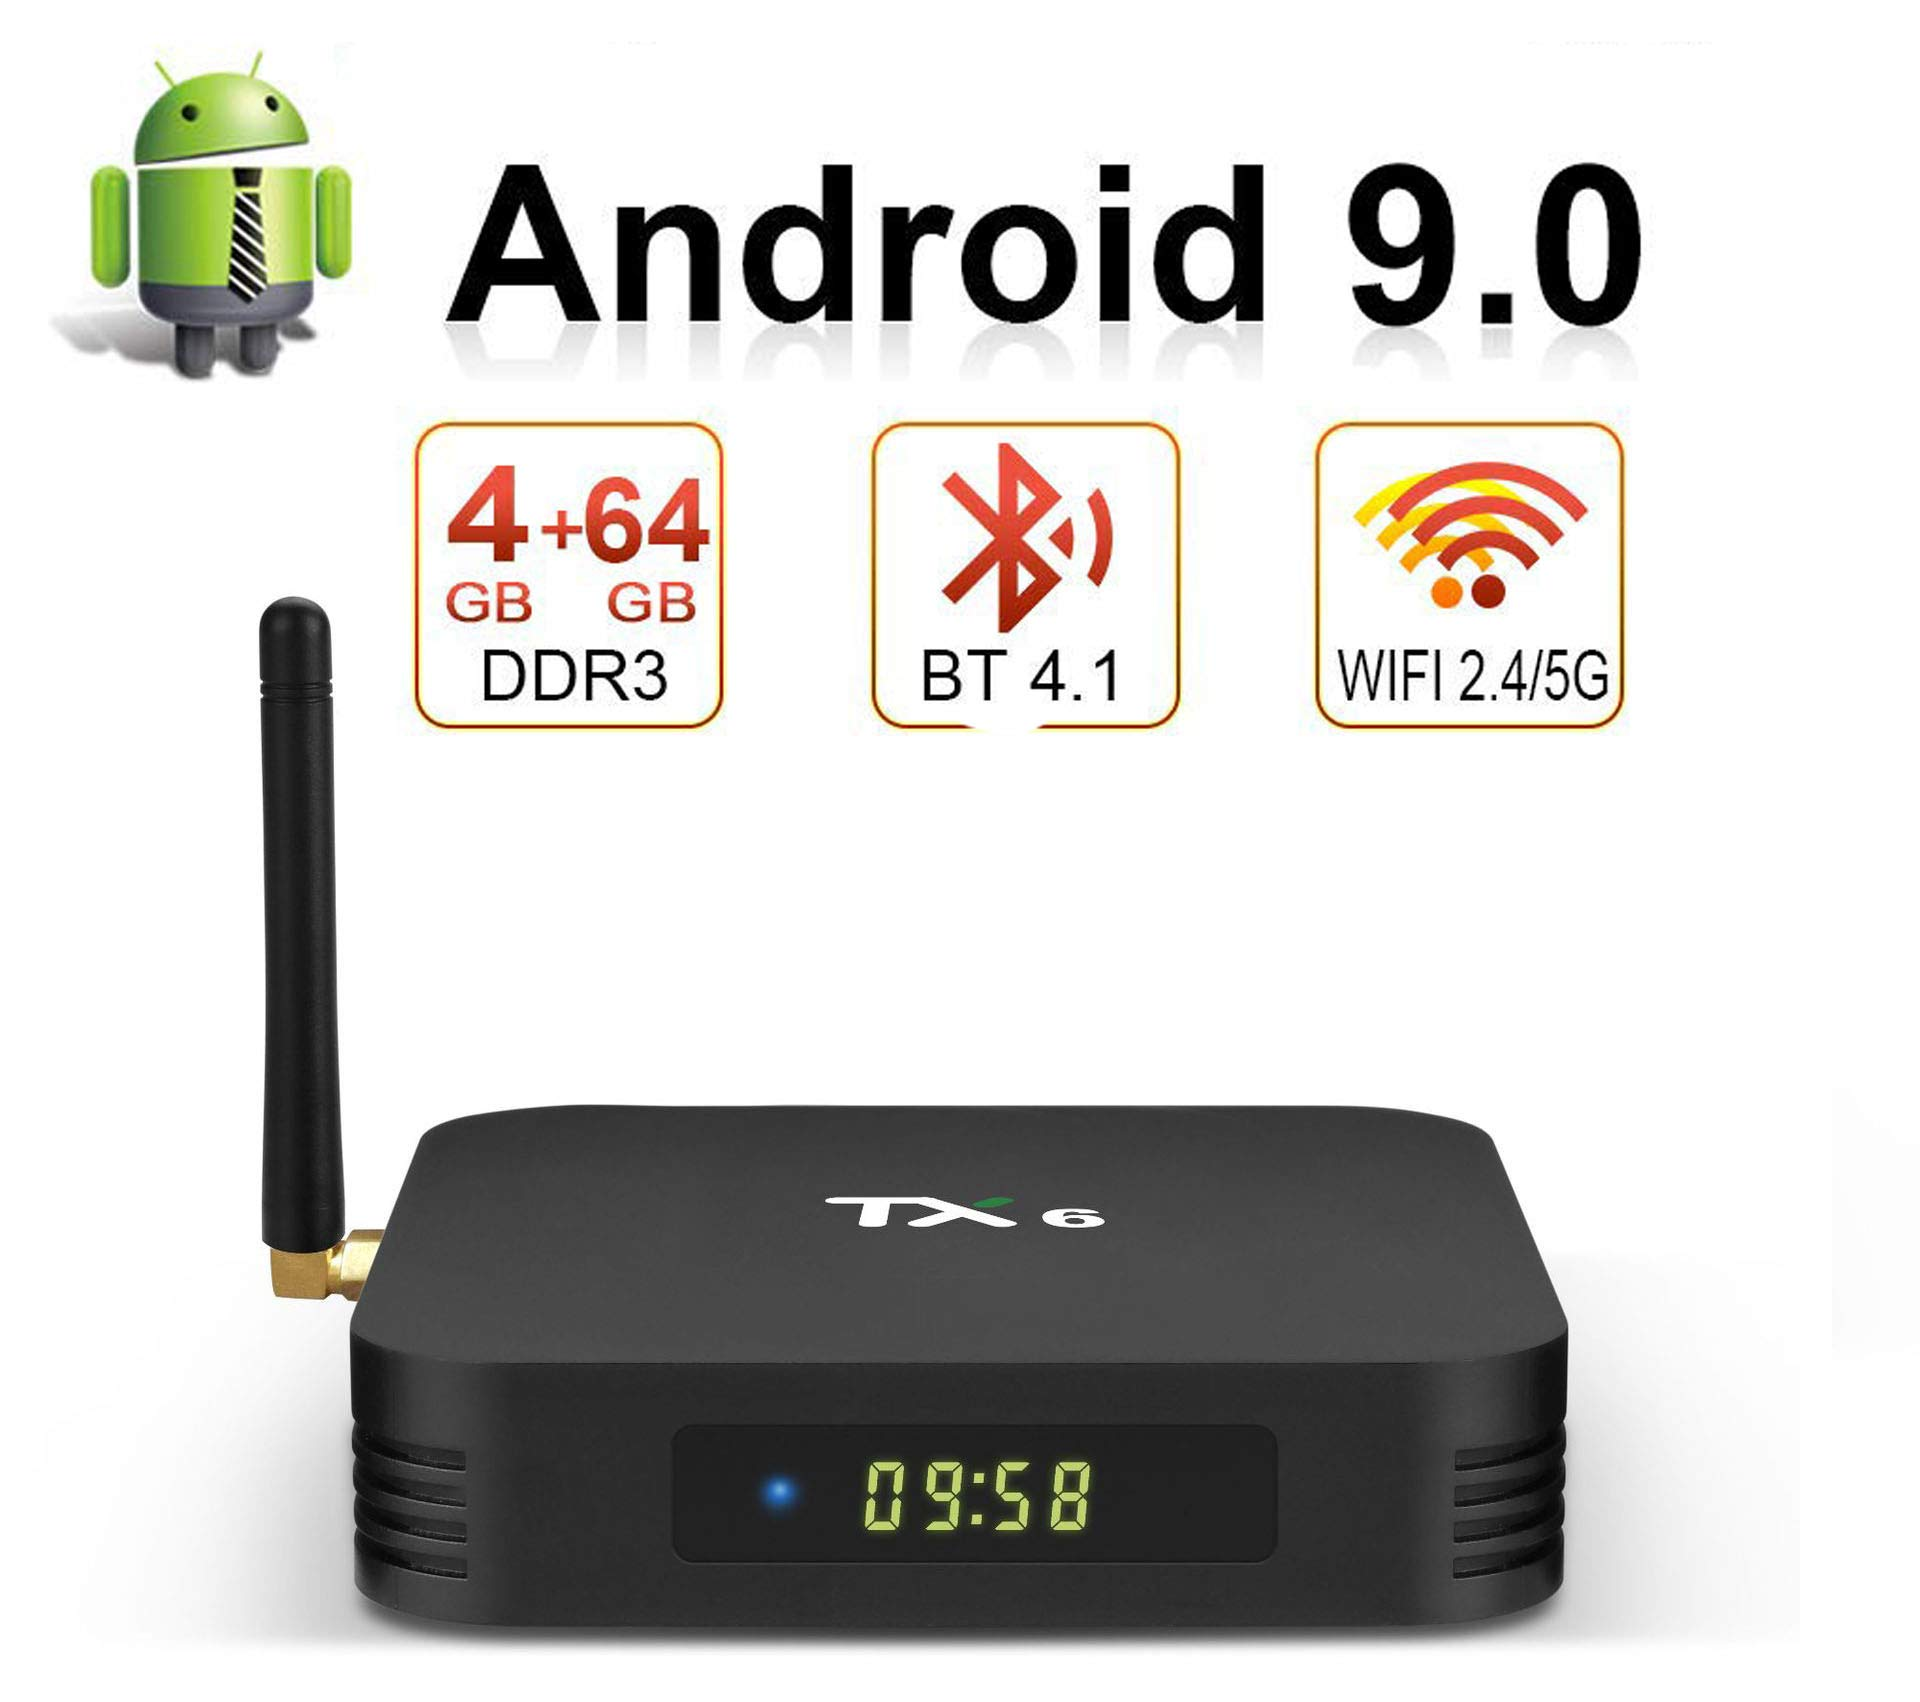 Bqeel Android 9.0TV Box B1 MAX, 4G RAM 64G Emmc, CPU H6 64-bit, Wi-FI 2.4G / 5G 100M LAN, USB 3.0 / HDMI2.1 / SPDIF, H.265 4K Smart TV Box Android,4gb+64gb: Amazon.es: